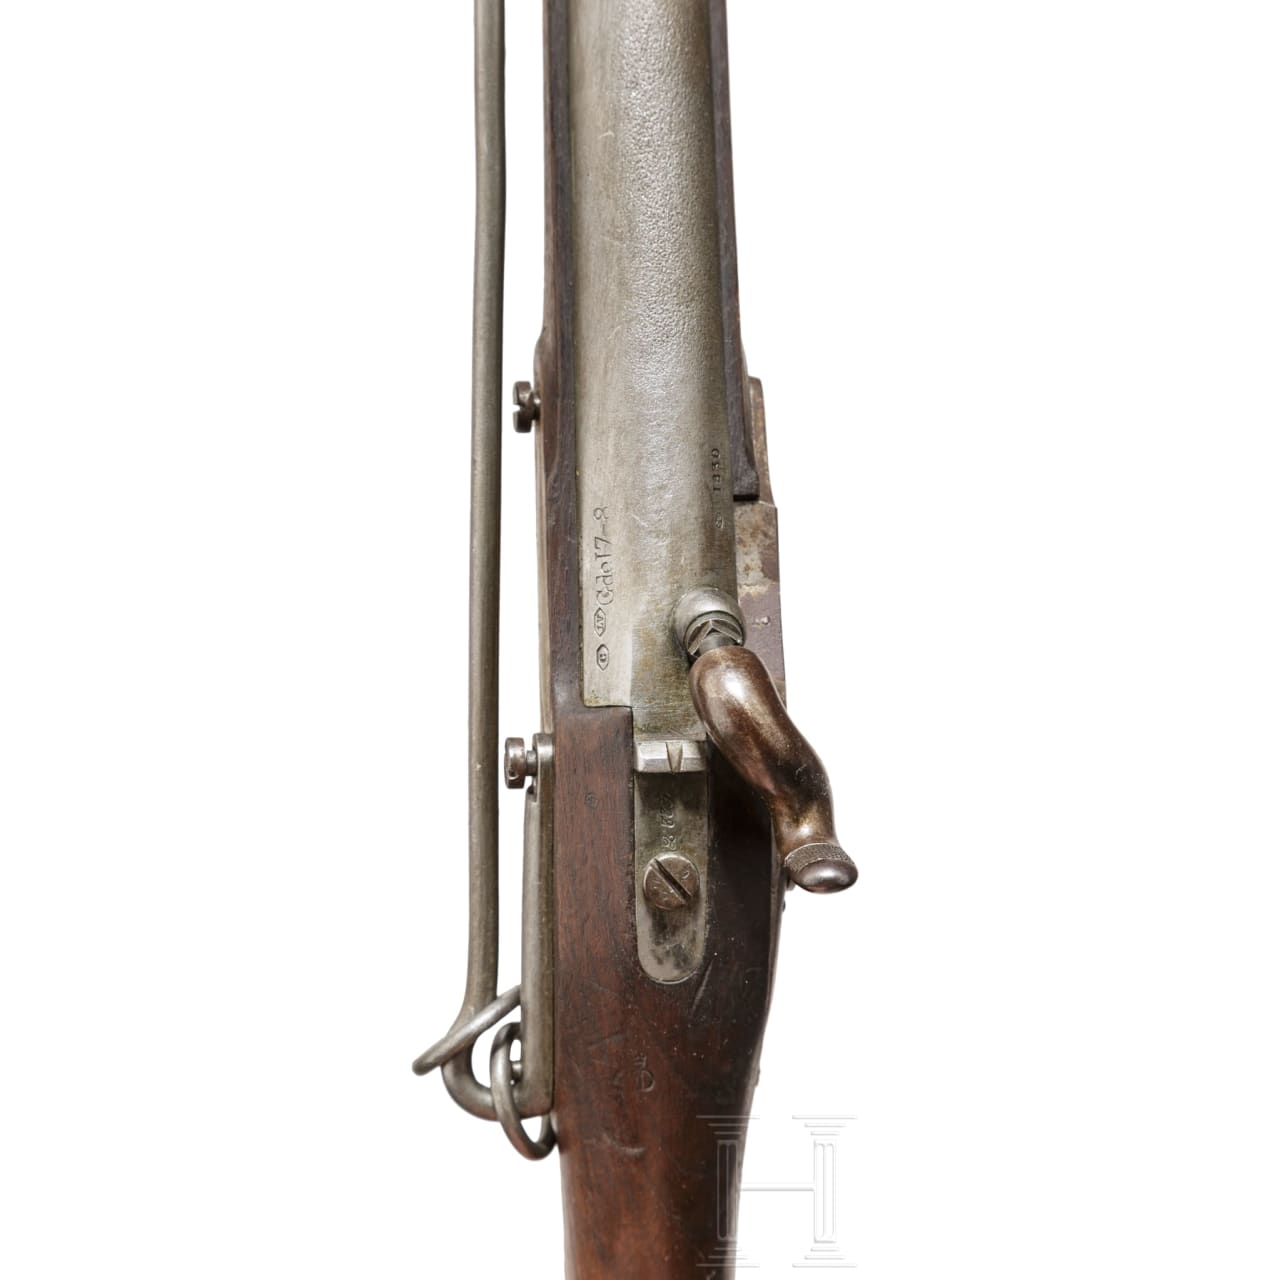 A French cavalry musketoon M 1822 T